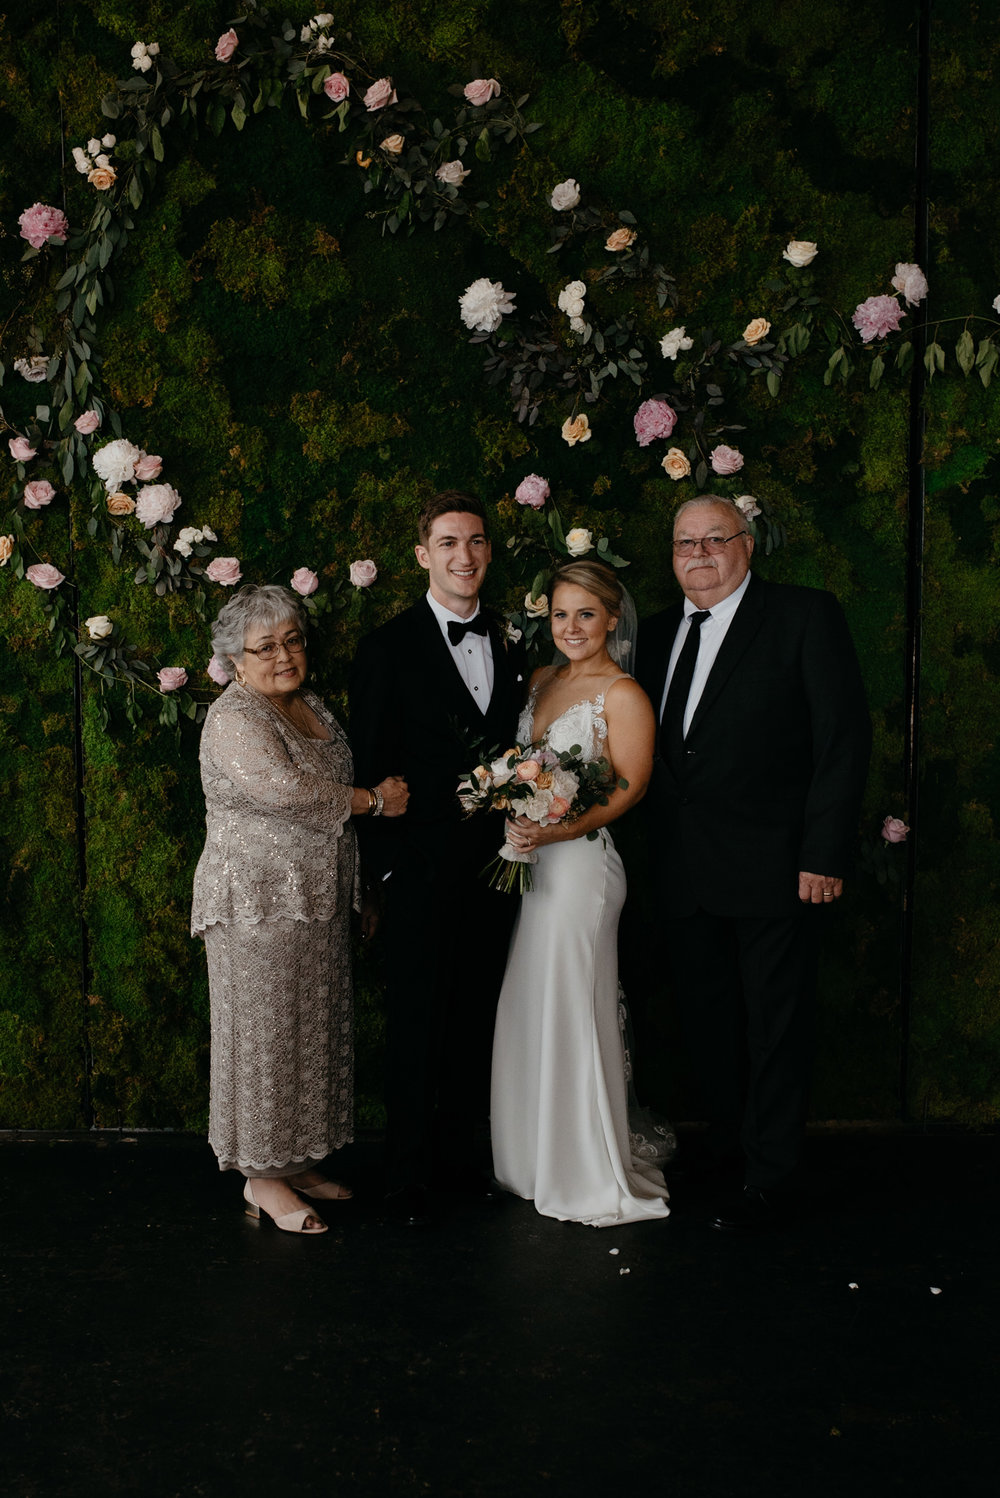 Grandparents and bride & groom at Moss wedding in Denver.